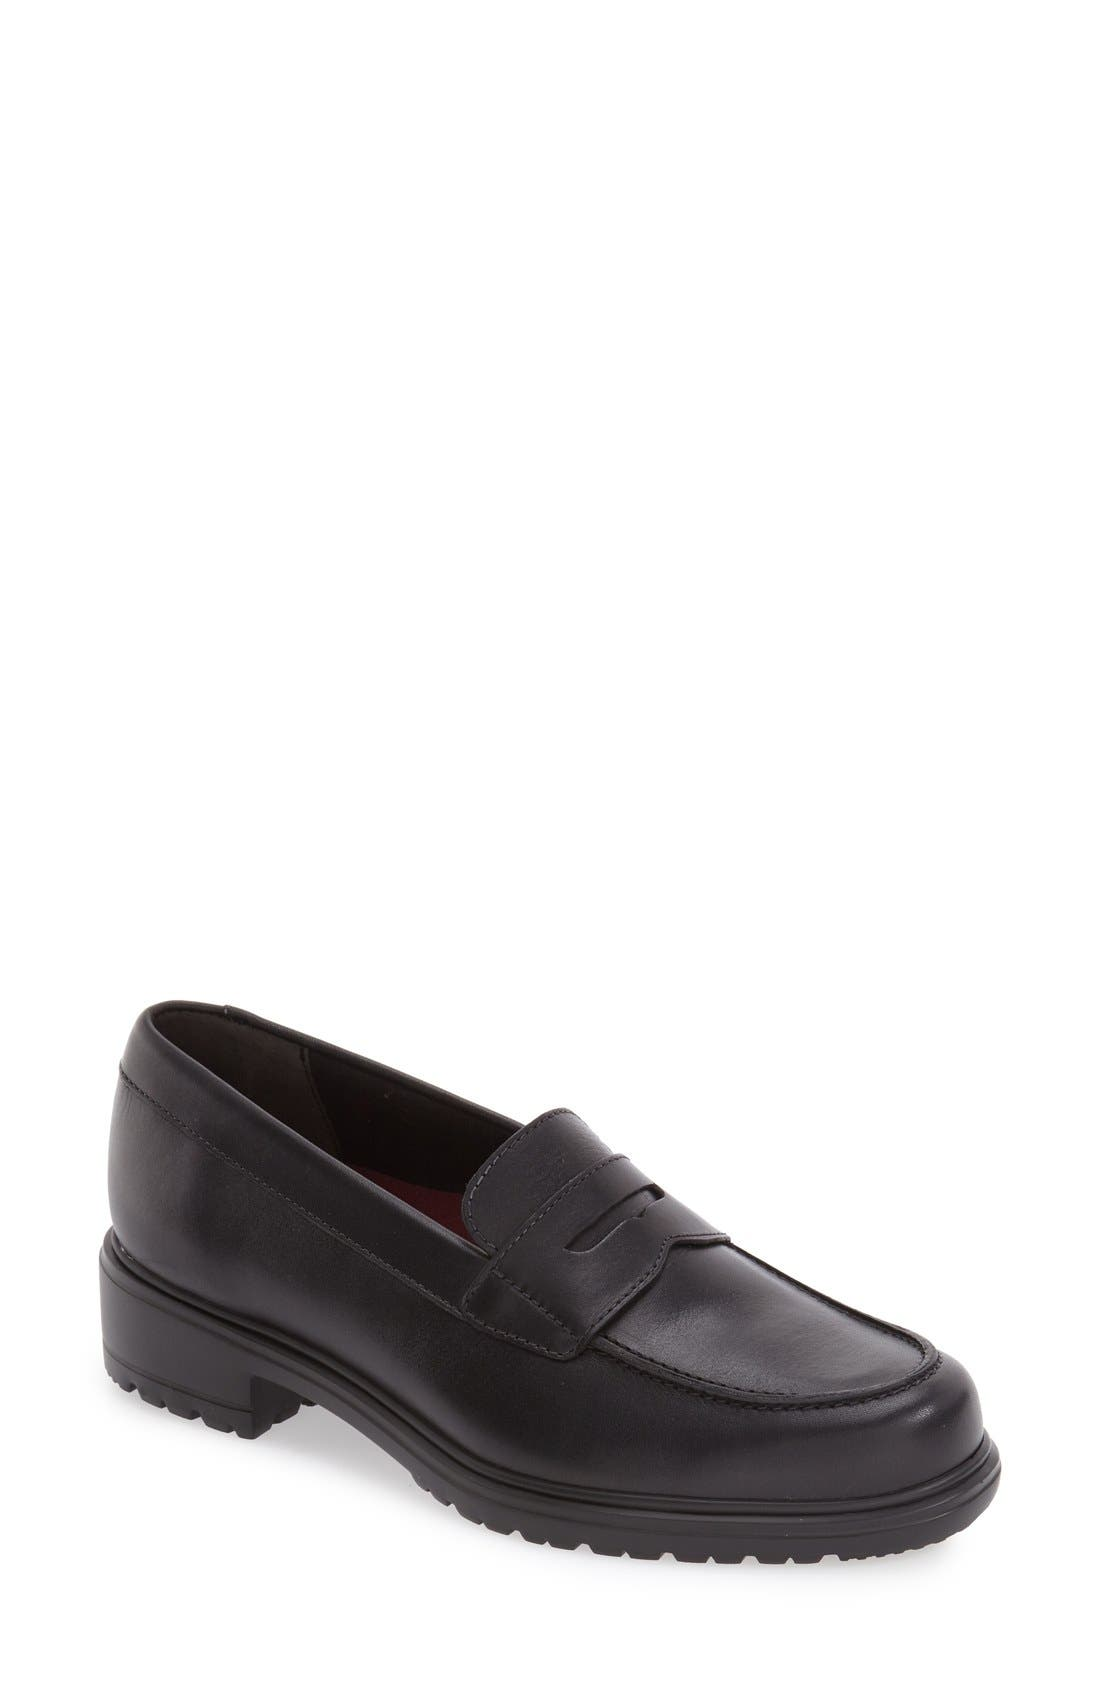 Munro 'Jordi' Leather Loafer (Women)